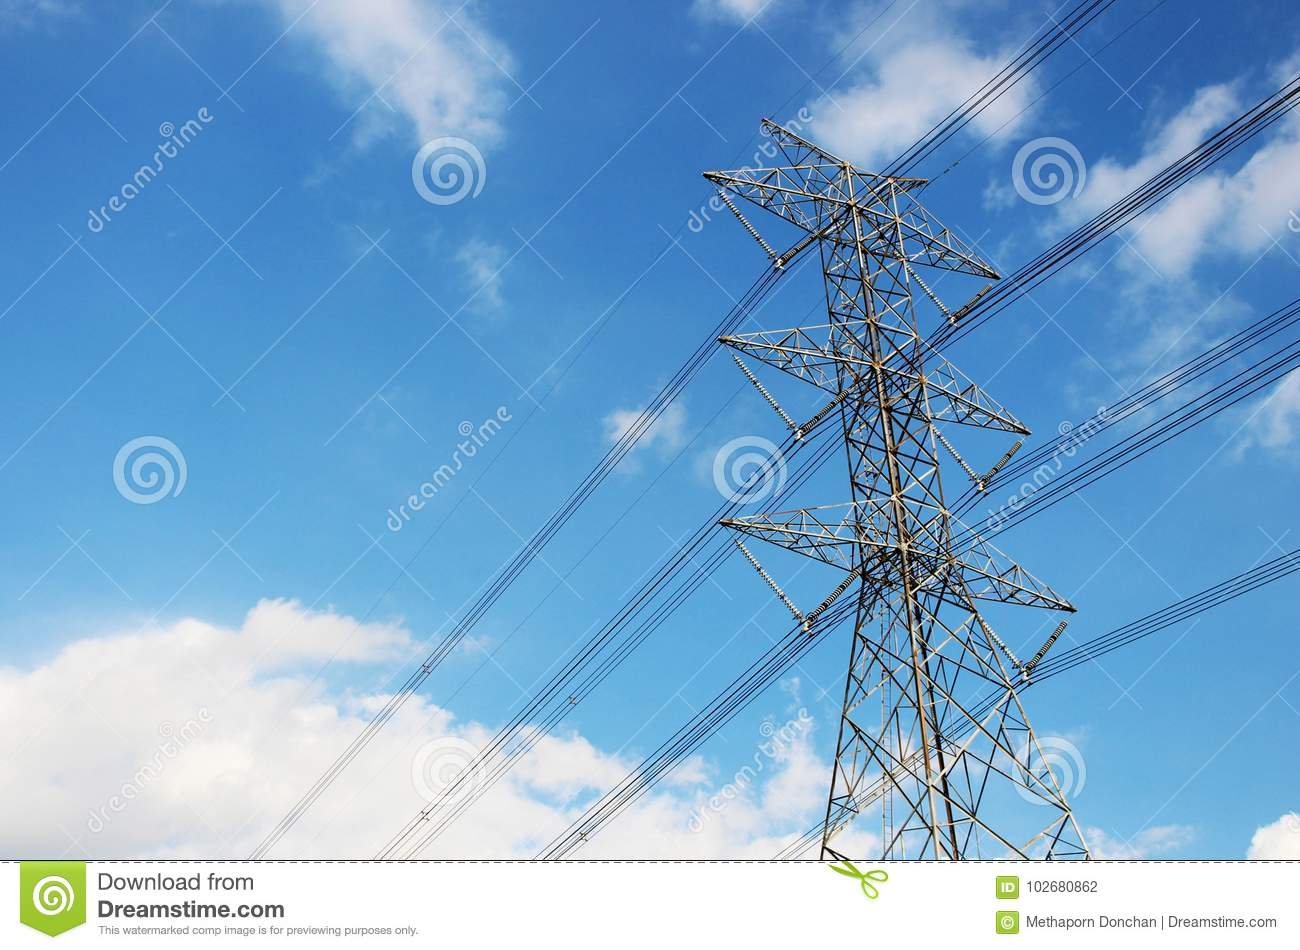 High Voltage Tower Or Electric Transmission Line With Blue Sky And White Cloud Stock Photo Image Of Generator Industry 102680862